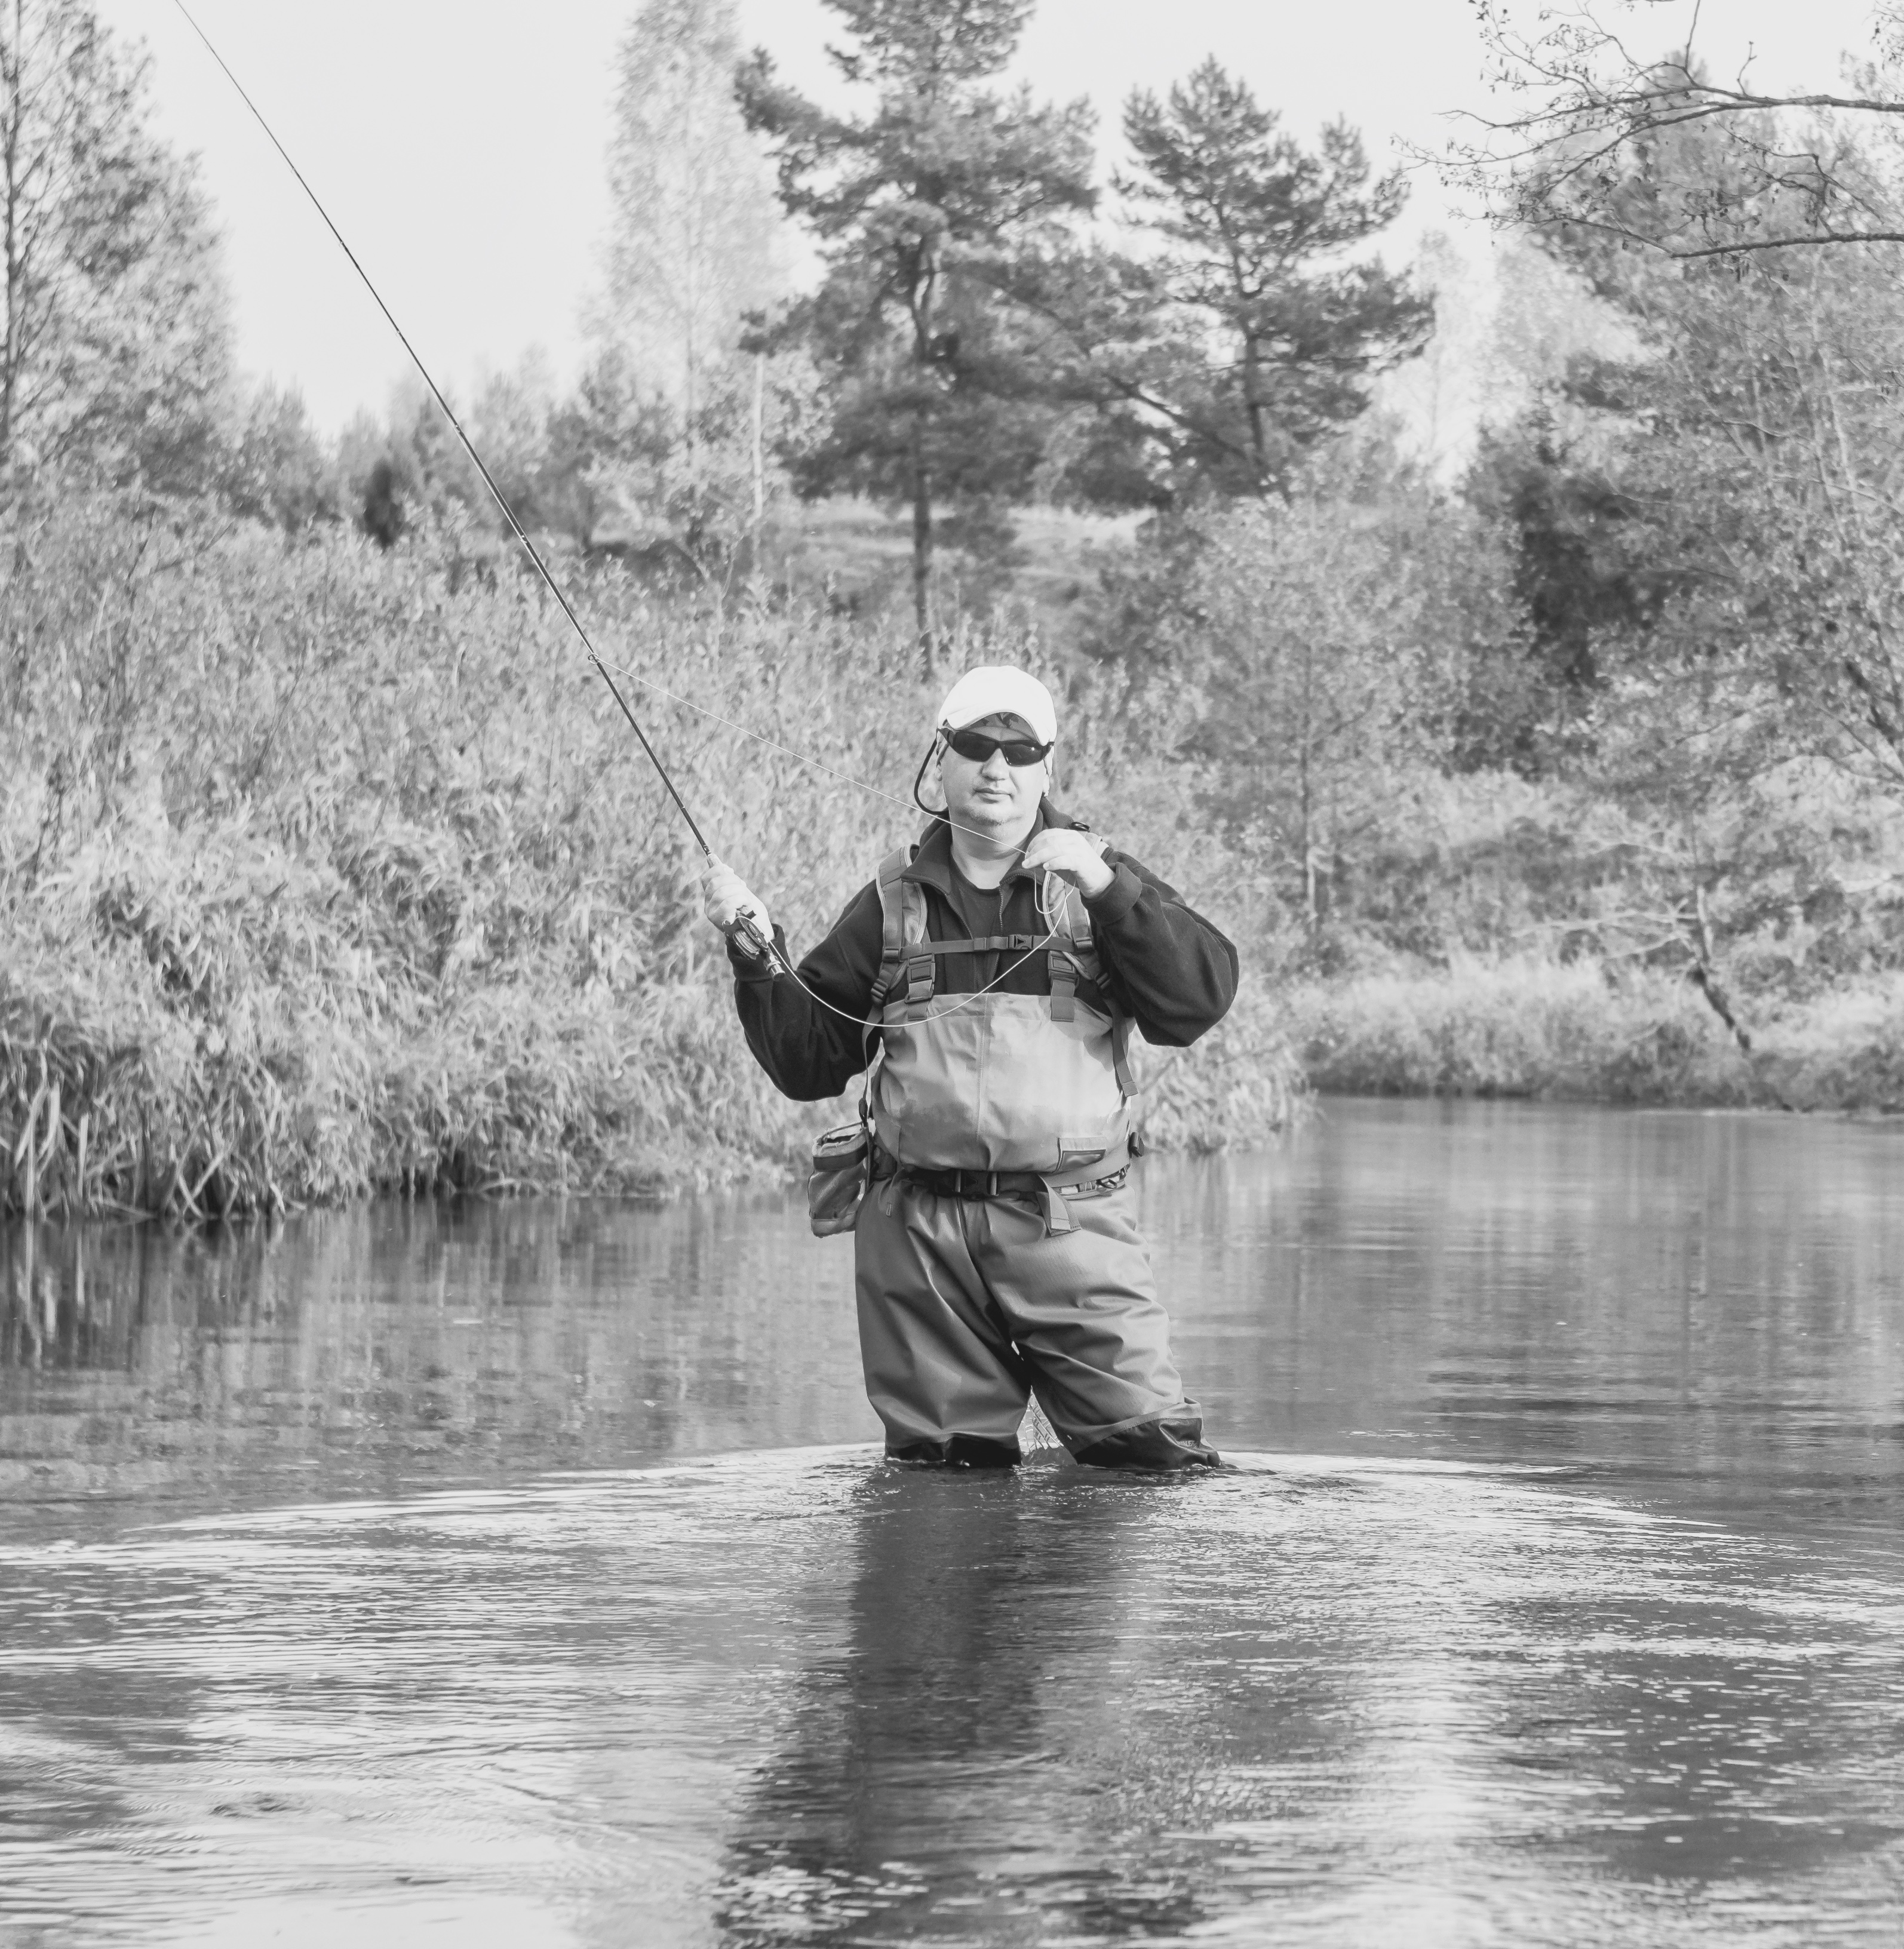 Fly fishing in London